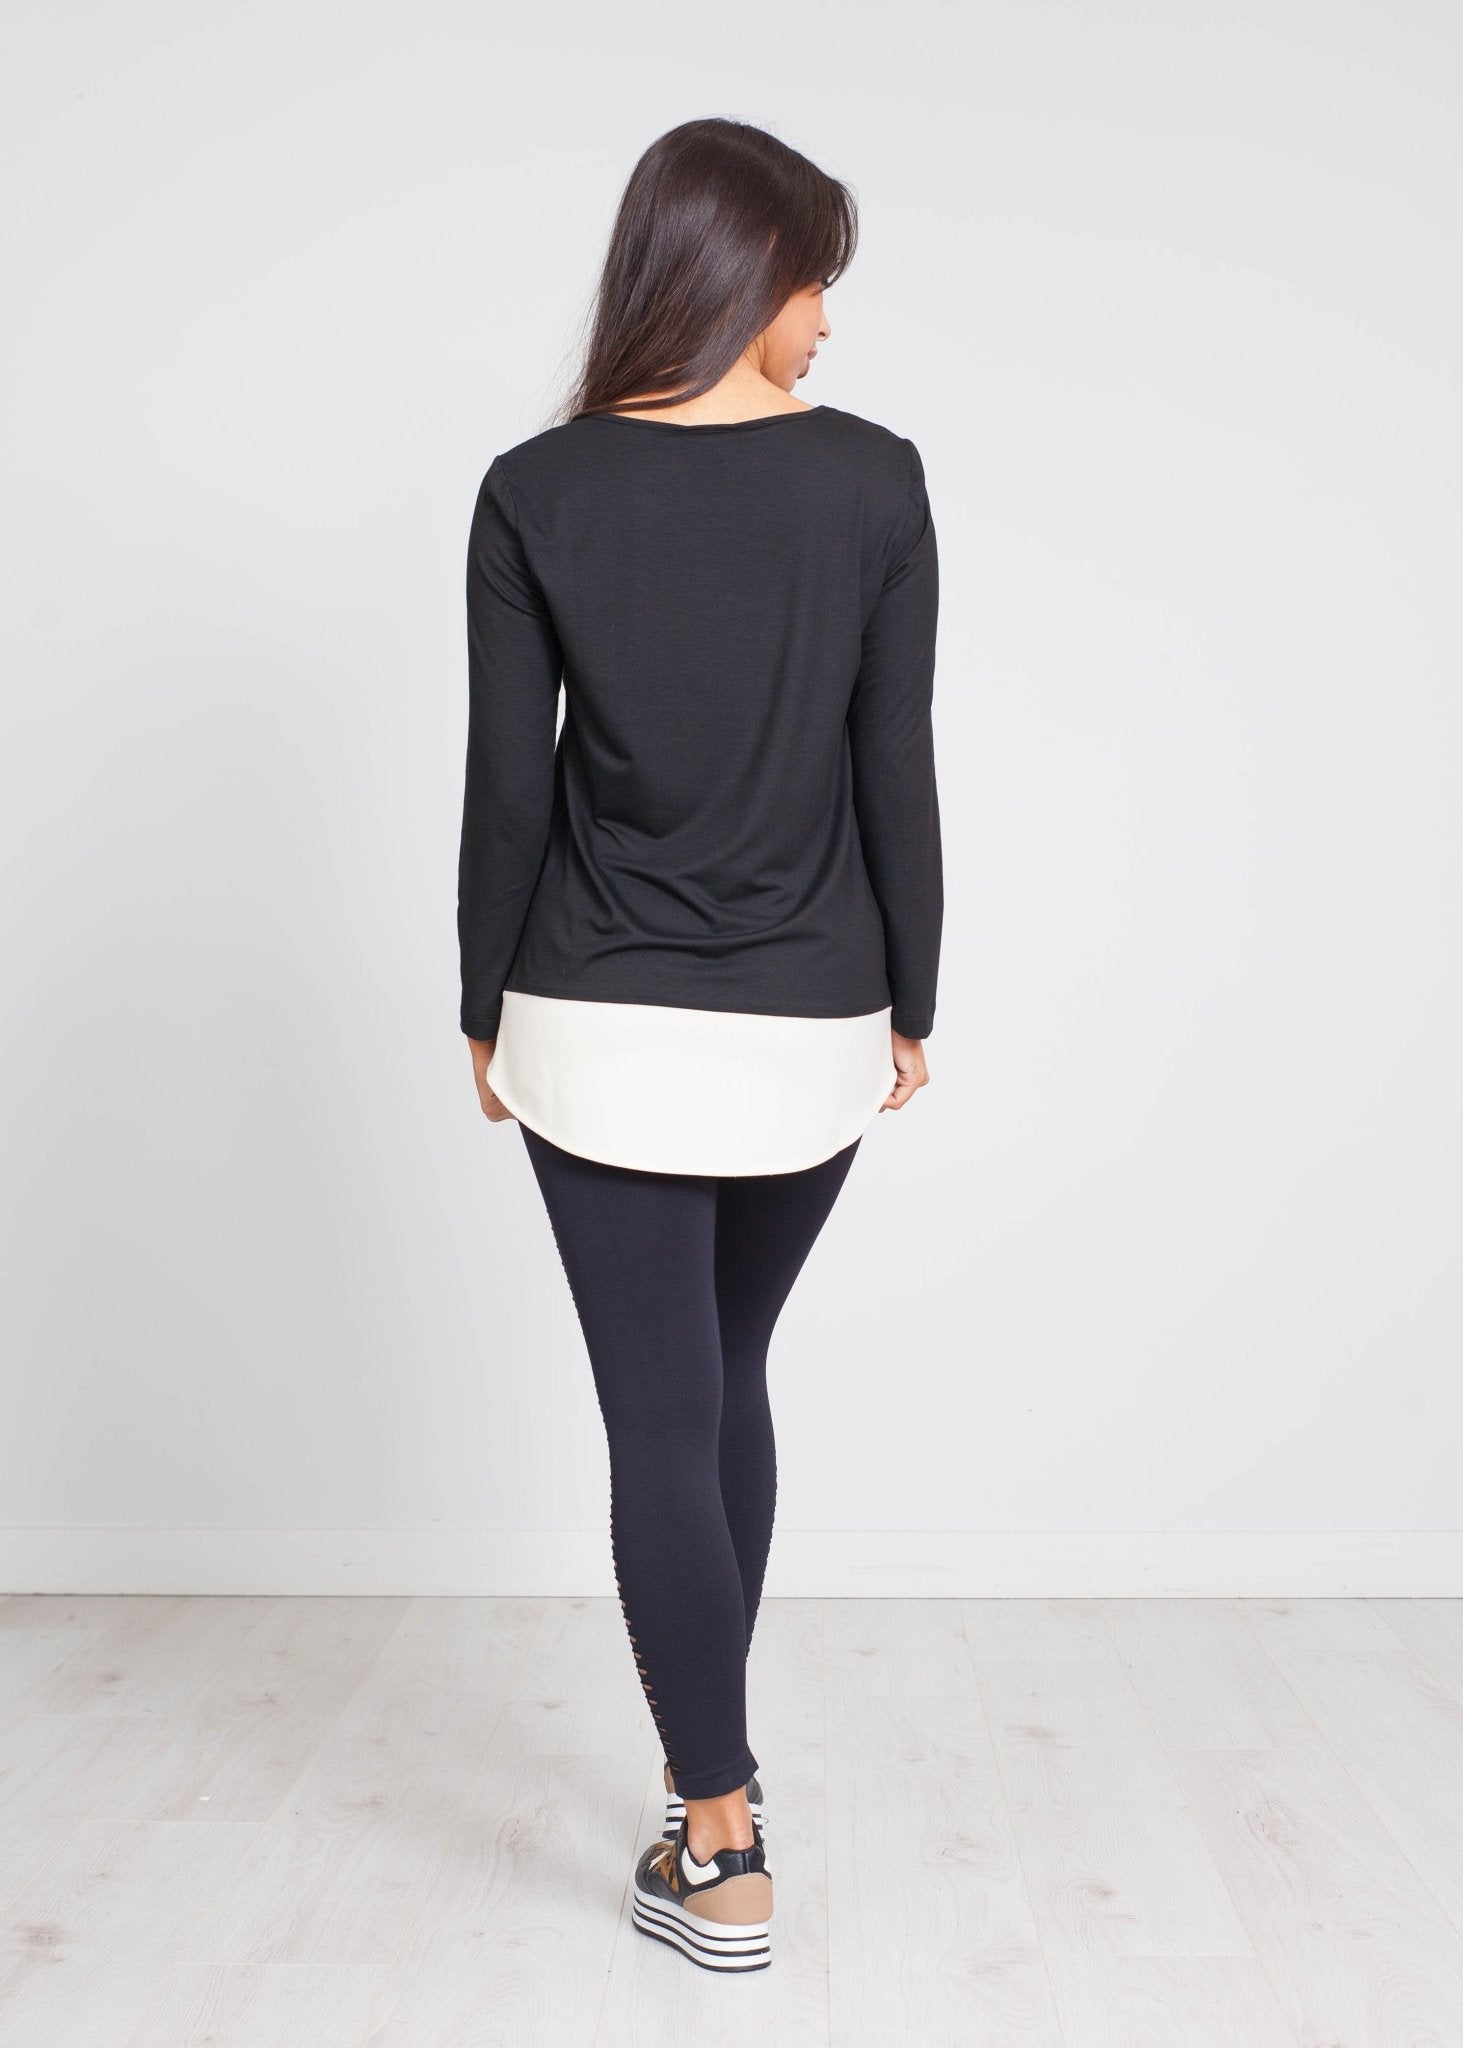 Cleo Contrast Trim Top In Black - The Walk in Wardrobe